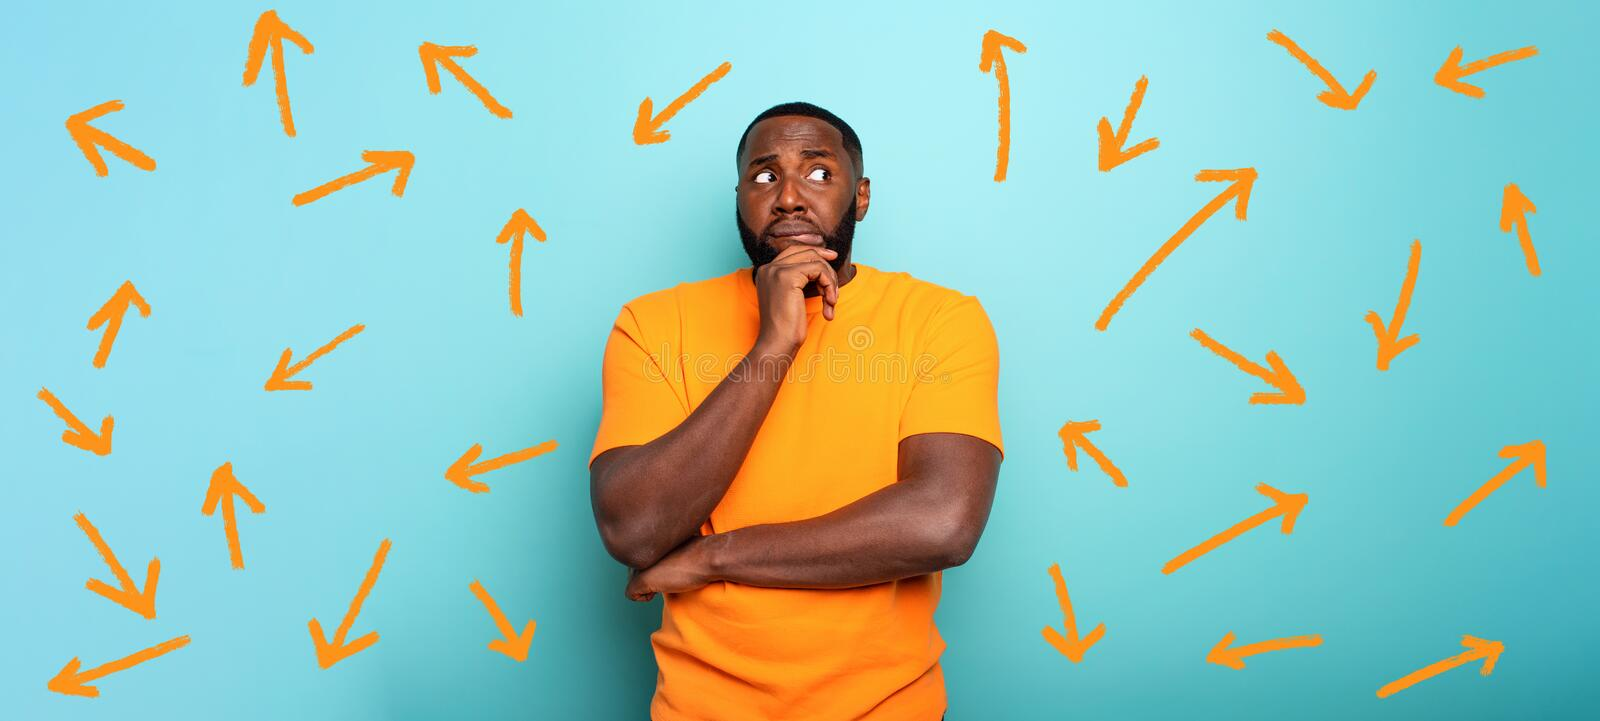 Confuse and pensive expression of a boy with many arrows to follow. cyan colored background stock photography